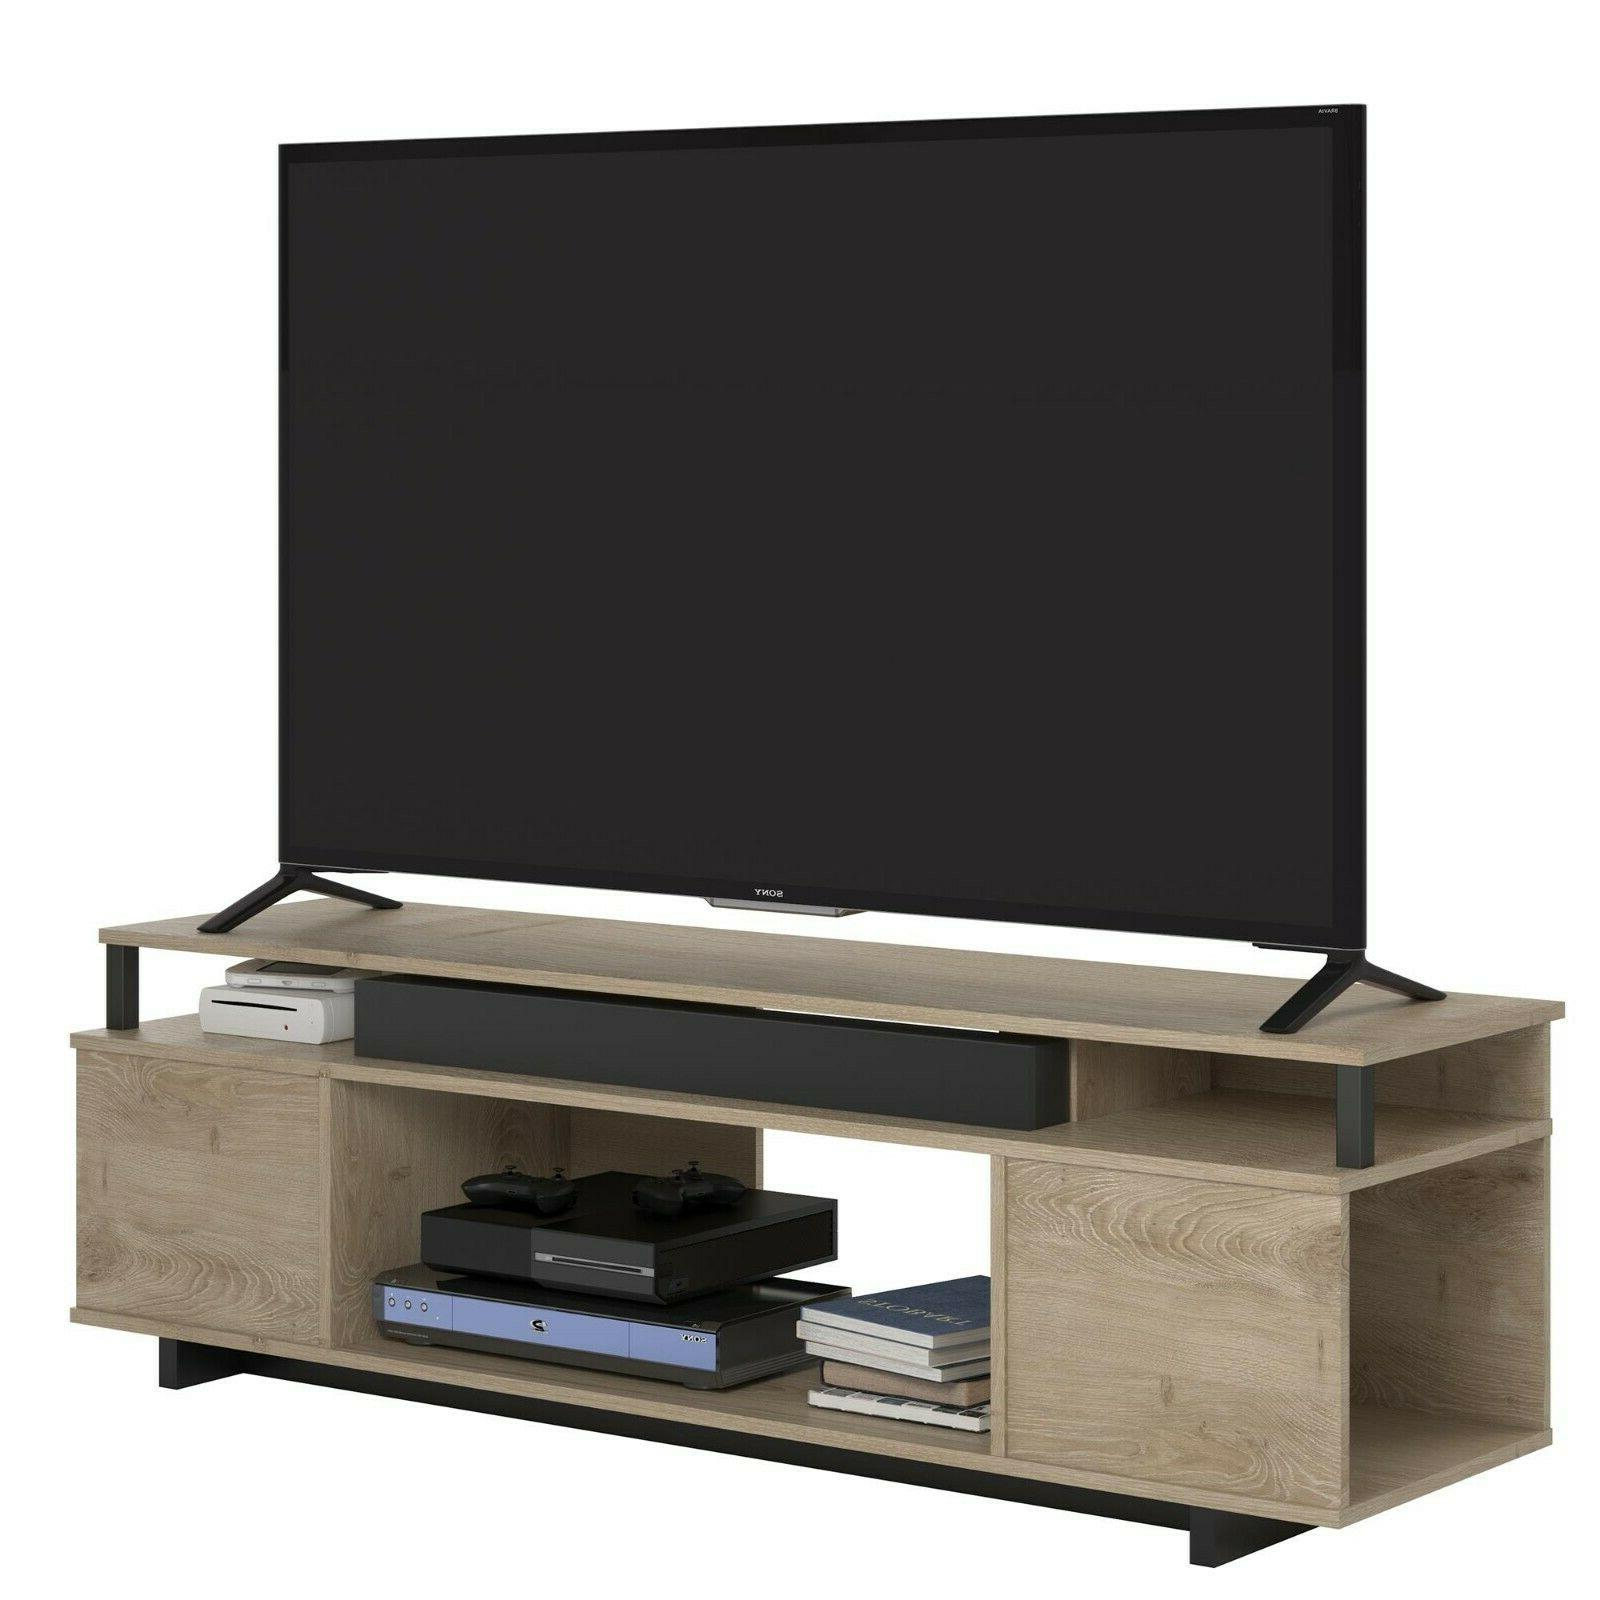 TV 65in Cabinet Shelves Mount